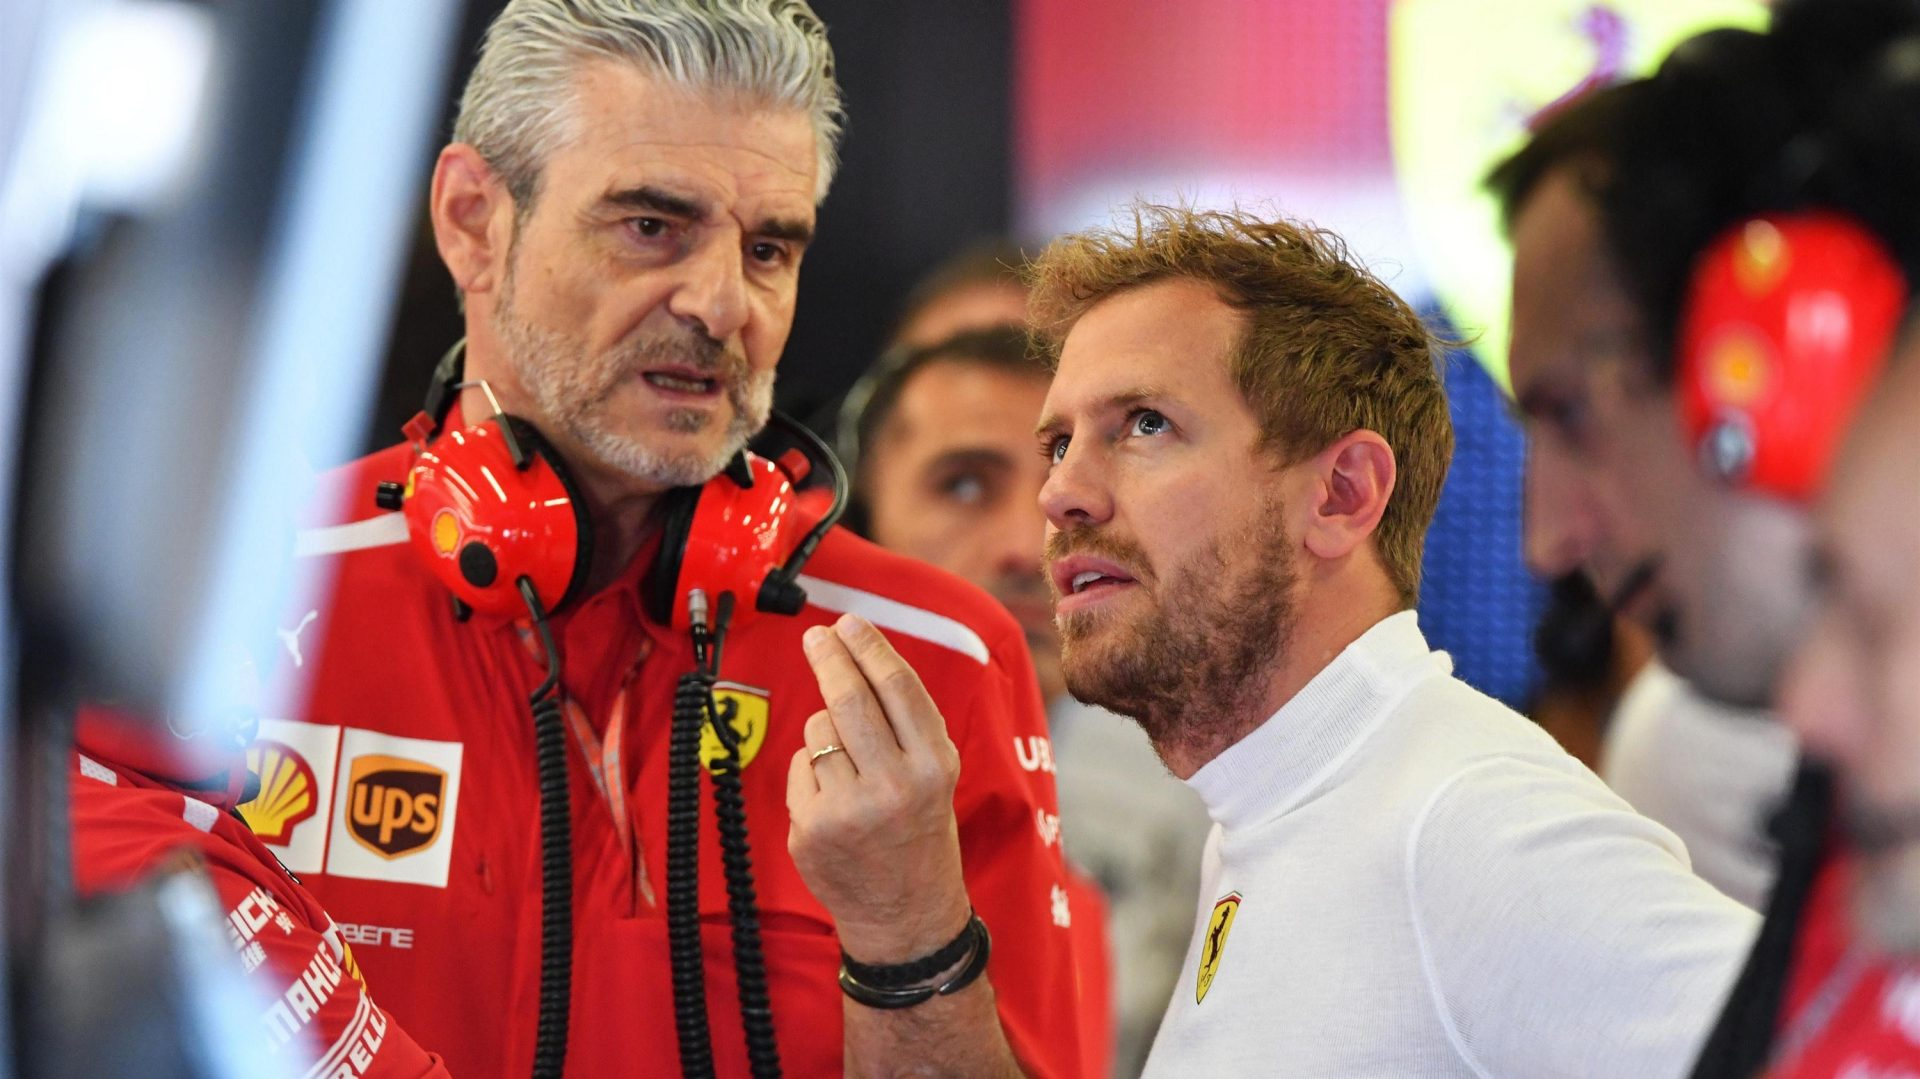 https://www.formula1.com/content/fom-website/en/latest/features/2018/7/gallery--the-best-images-from-great-britain/_jcr_content/featureContent/manual_gallery/image20.img.1920.medium.jpg/1530873559868.jpg